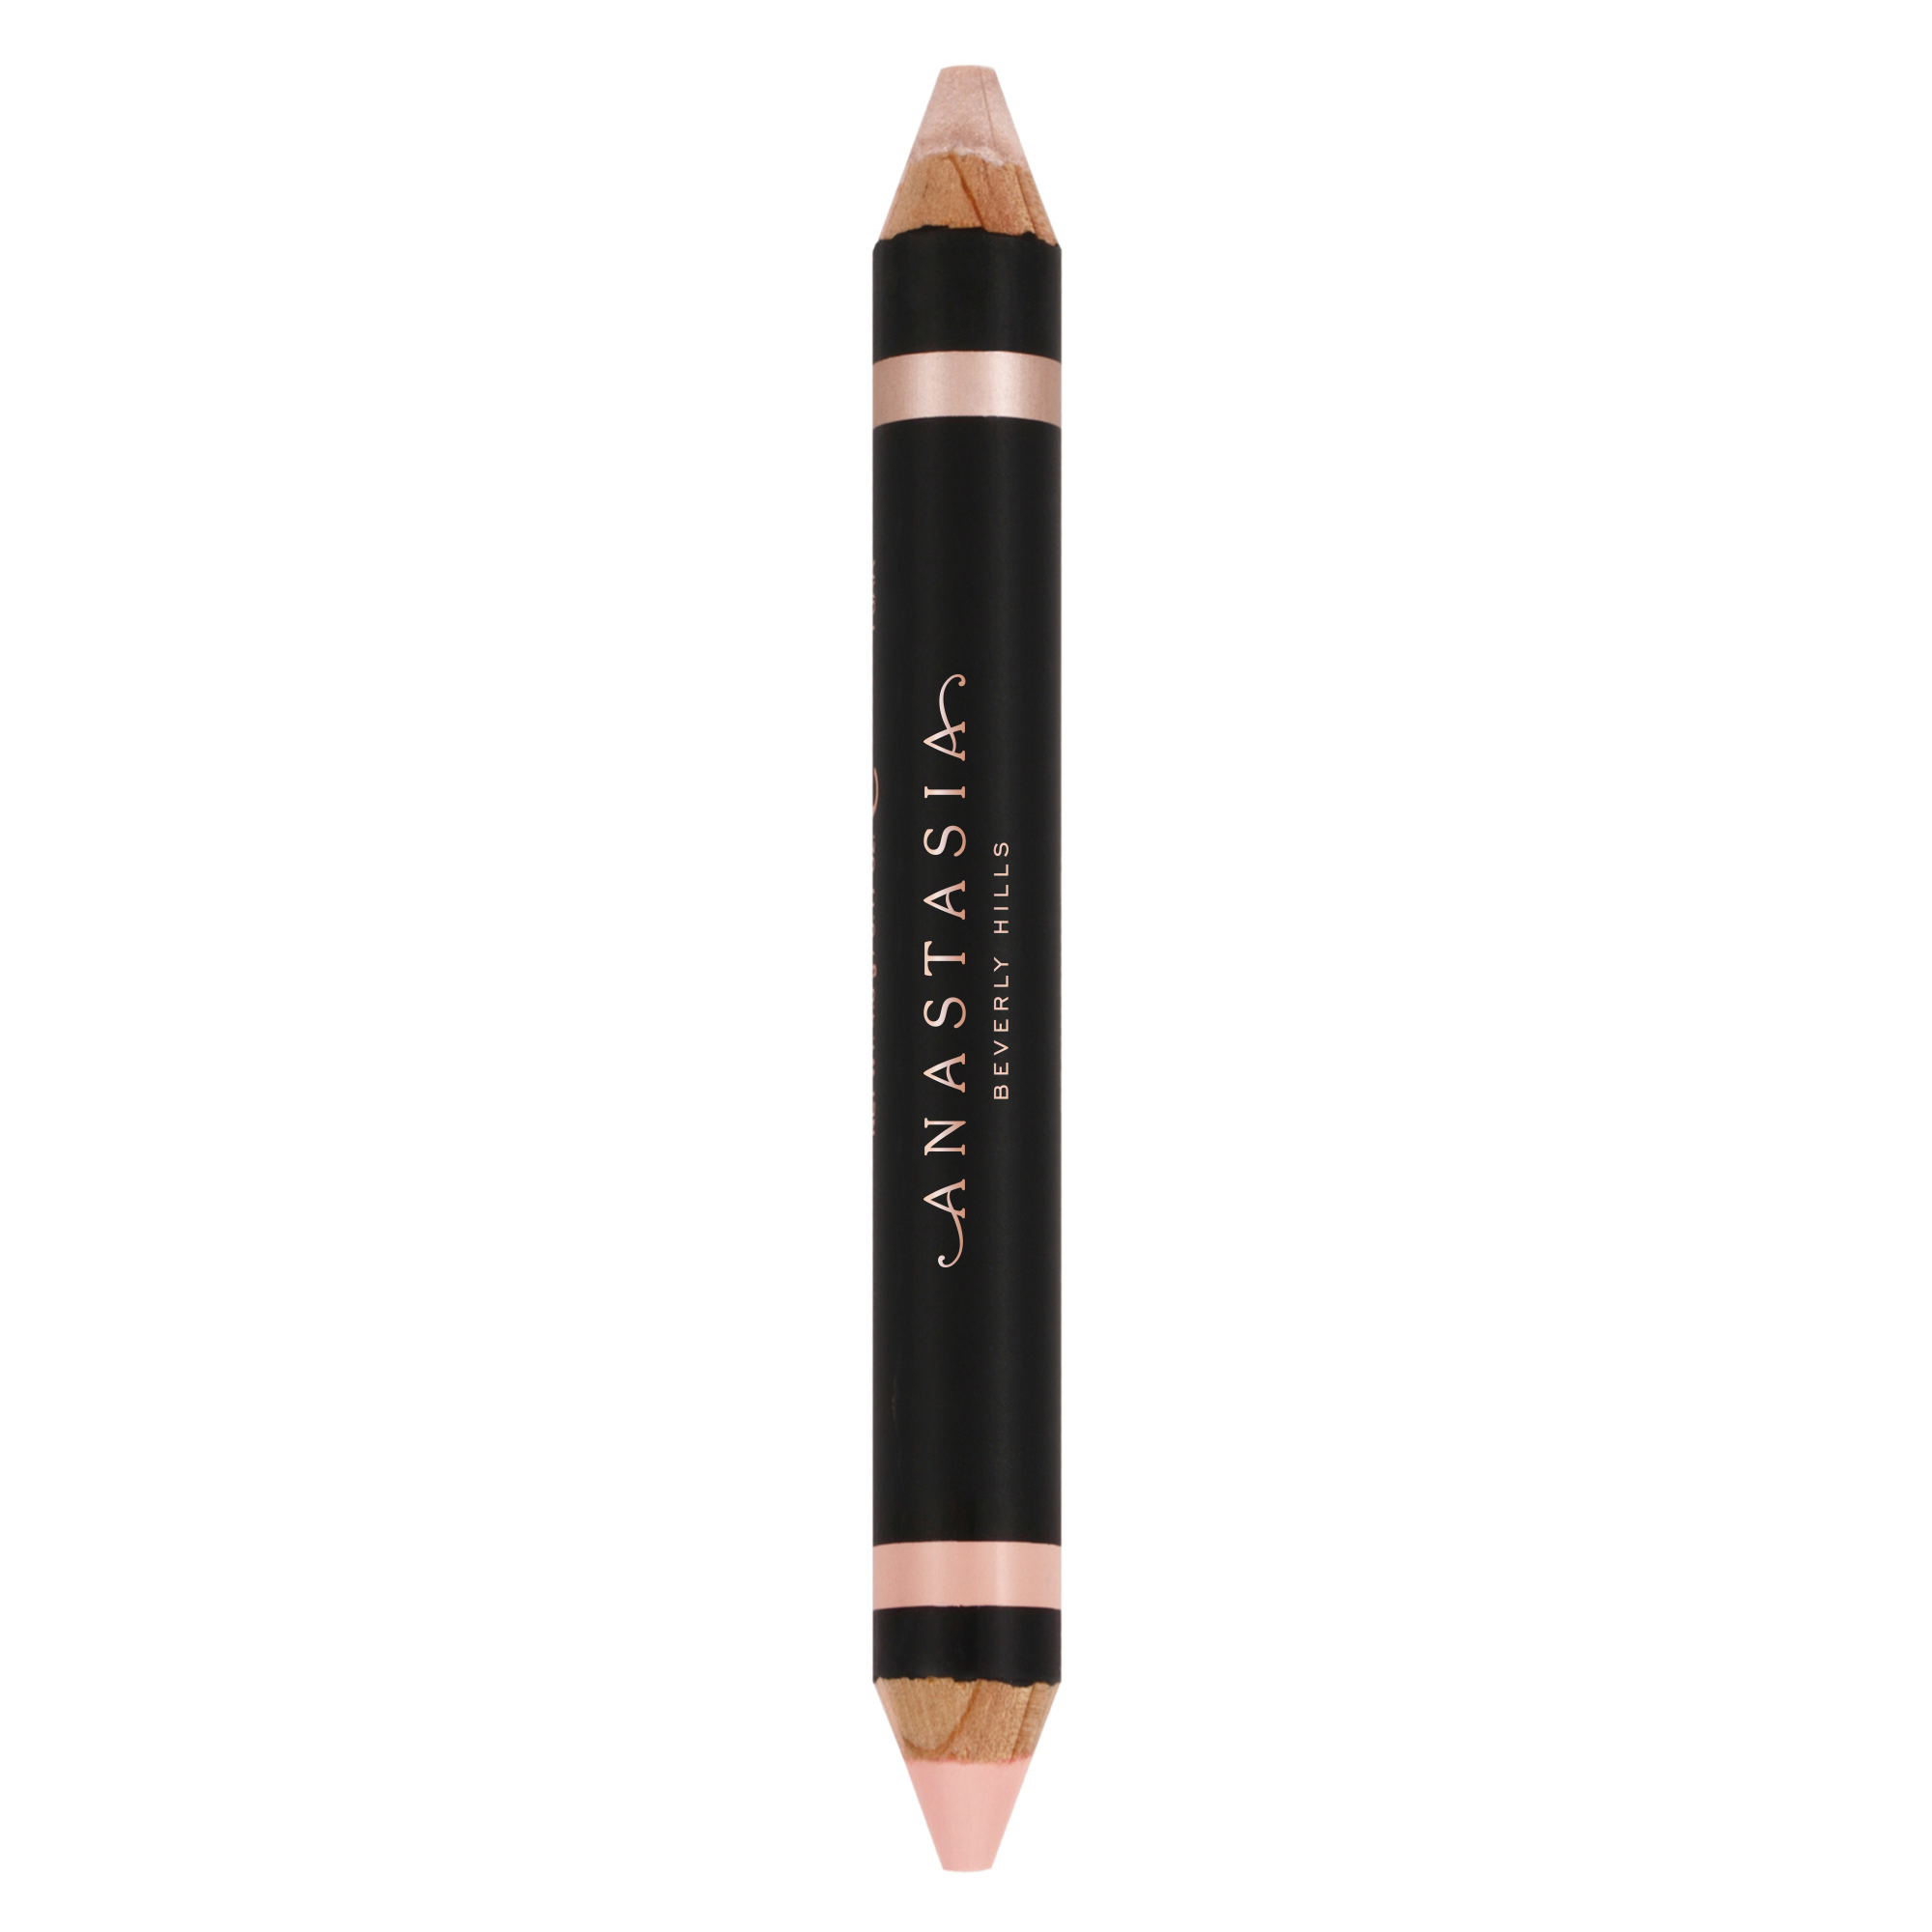 Highlighting Duo Pencil - Camille/Sand